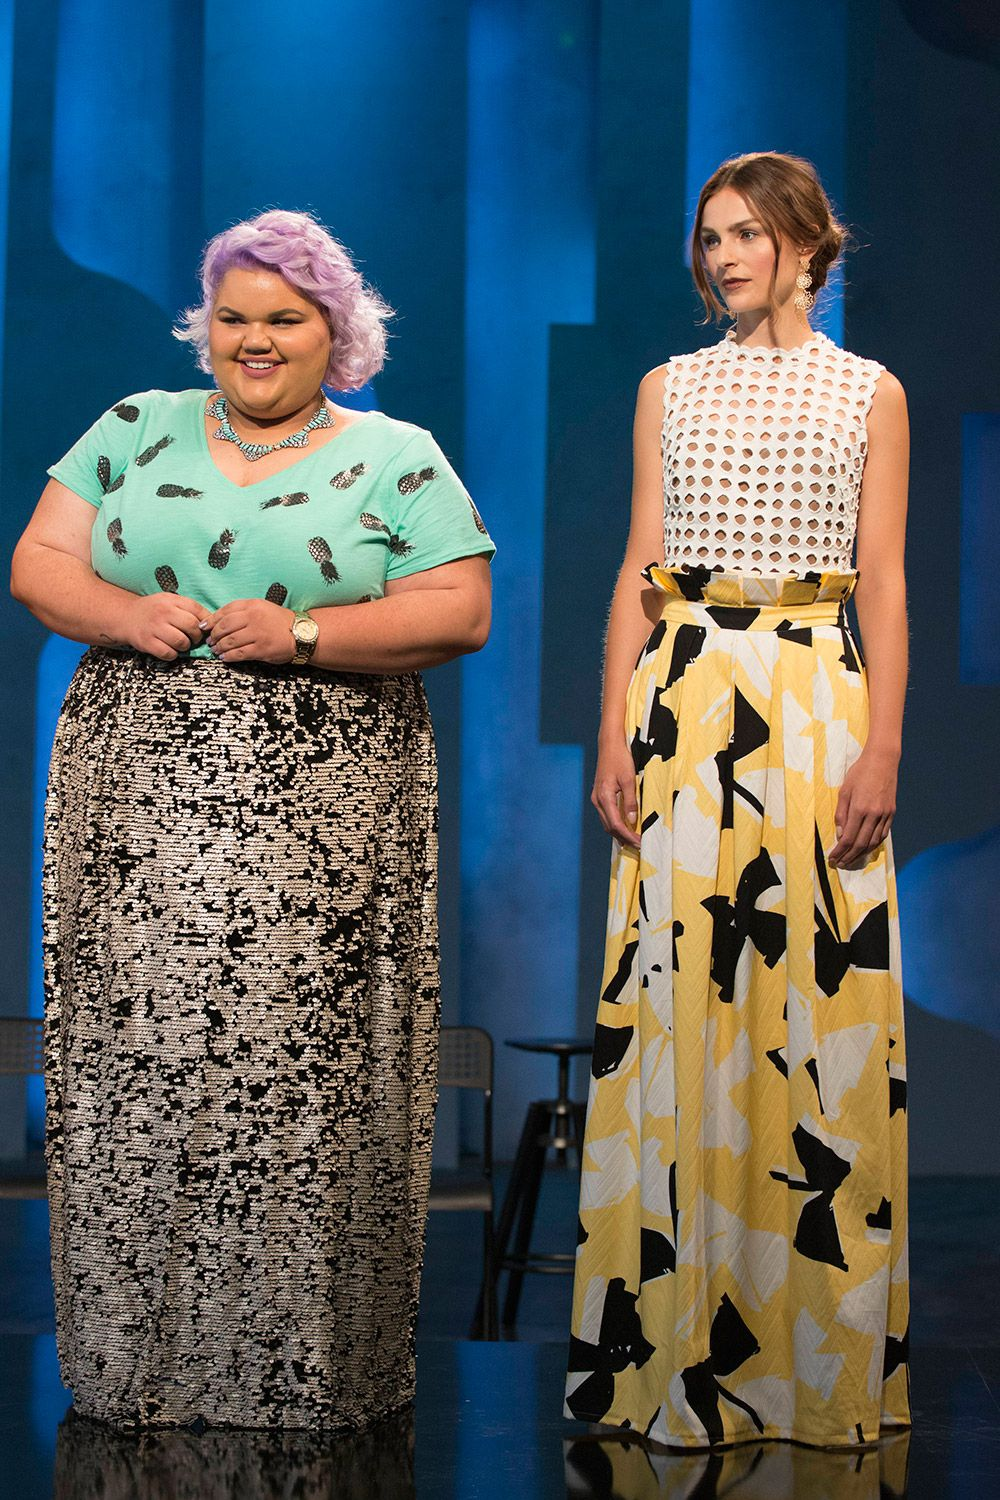 03b496c0819 Project Runway Season 14 Episode 1 - I LOVED this outfit from Ashley Nell  Tipton